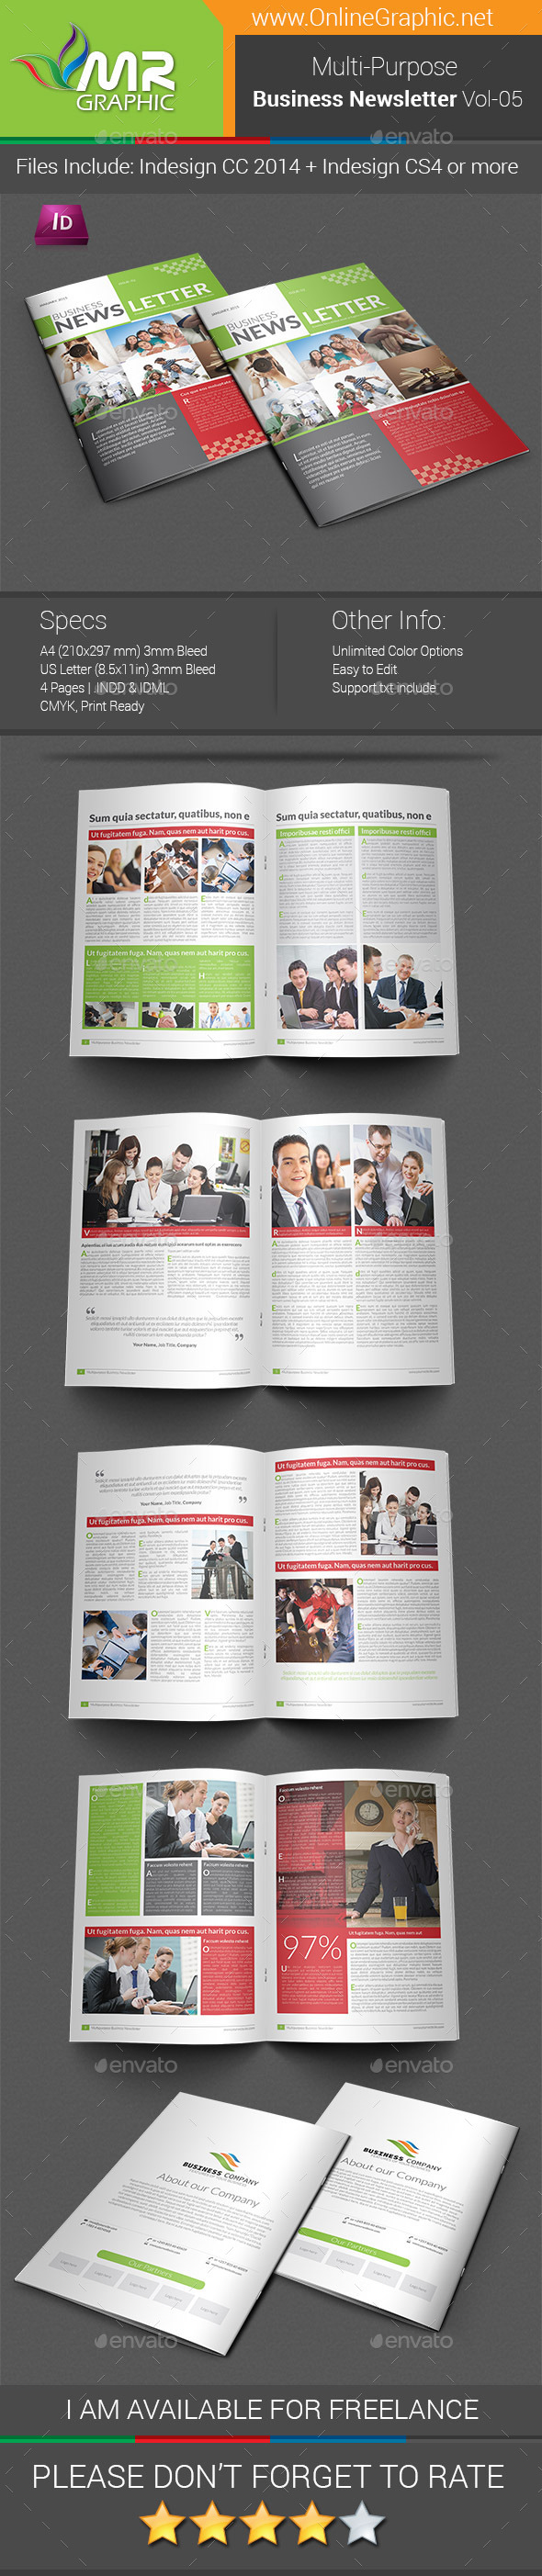 Multipurpose Business Newsletter Template Vol-05 - Newsletters Print Templates